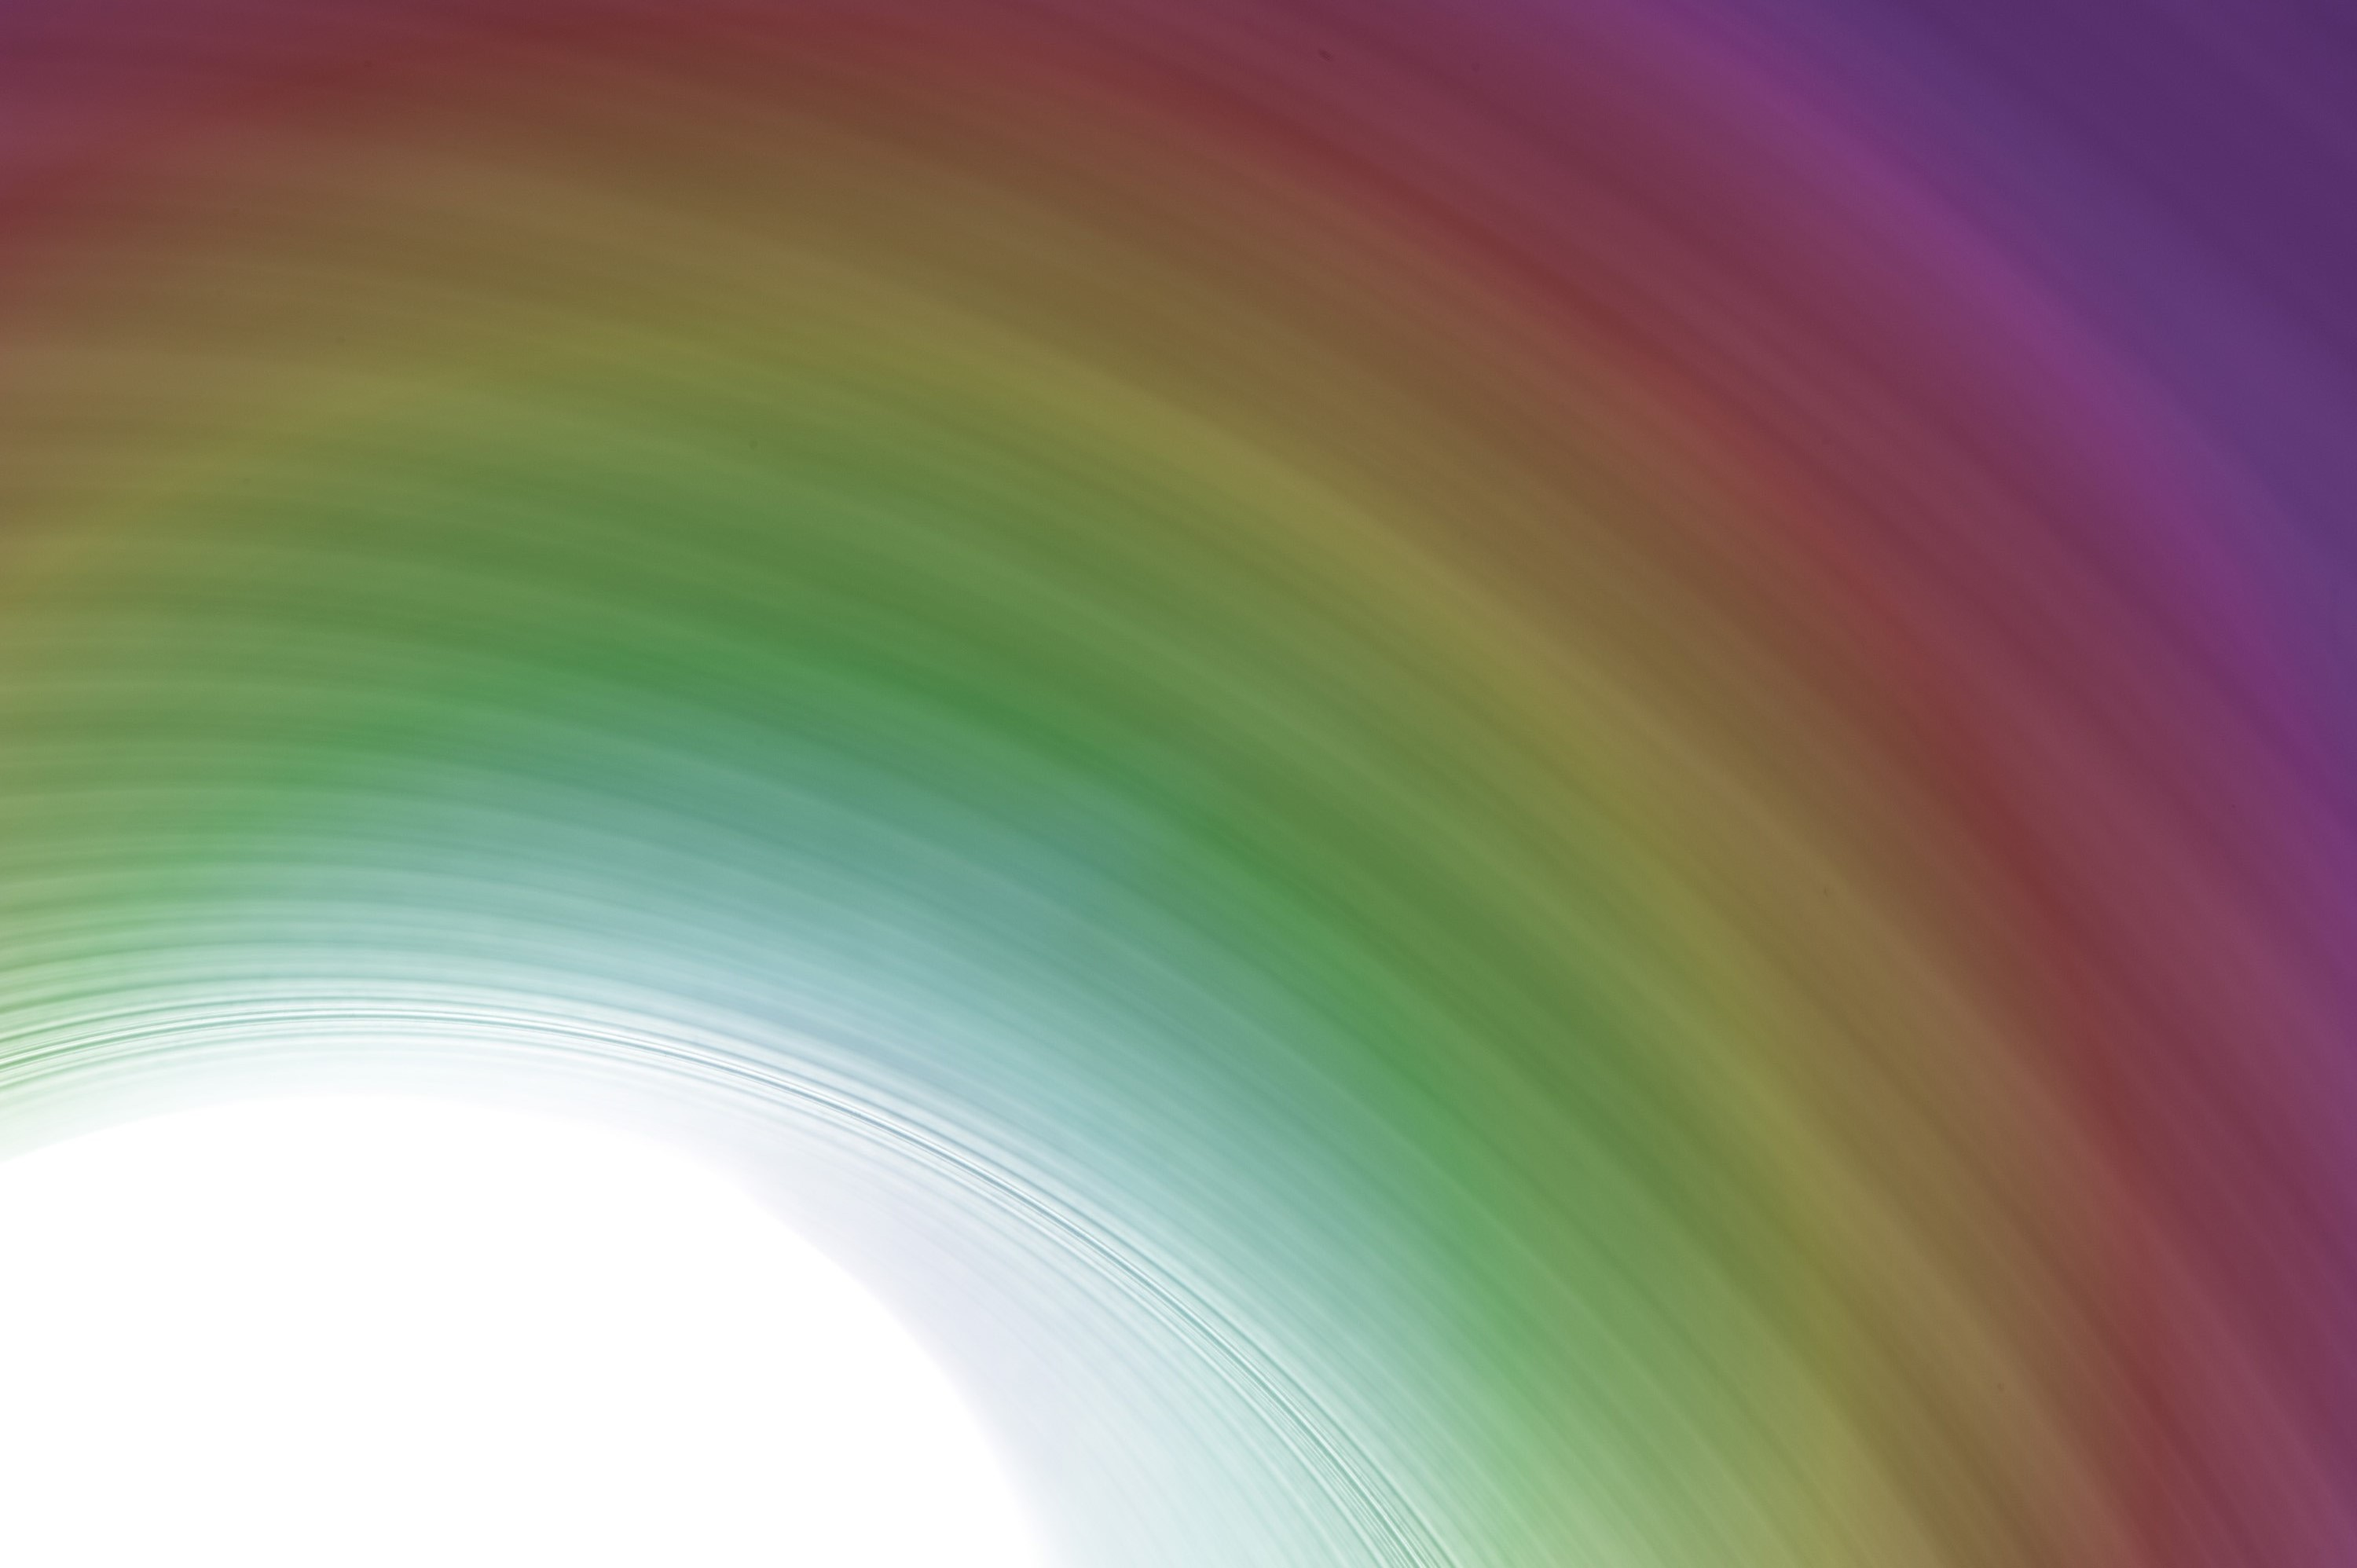 bright white light with colorful rainbow lines emanating from the centre